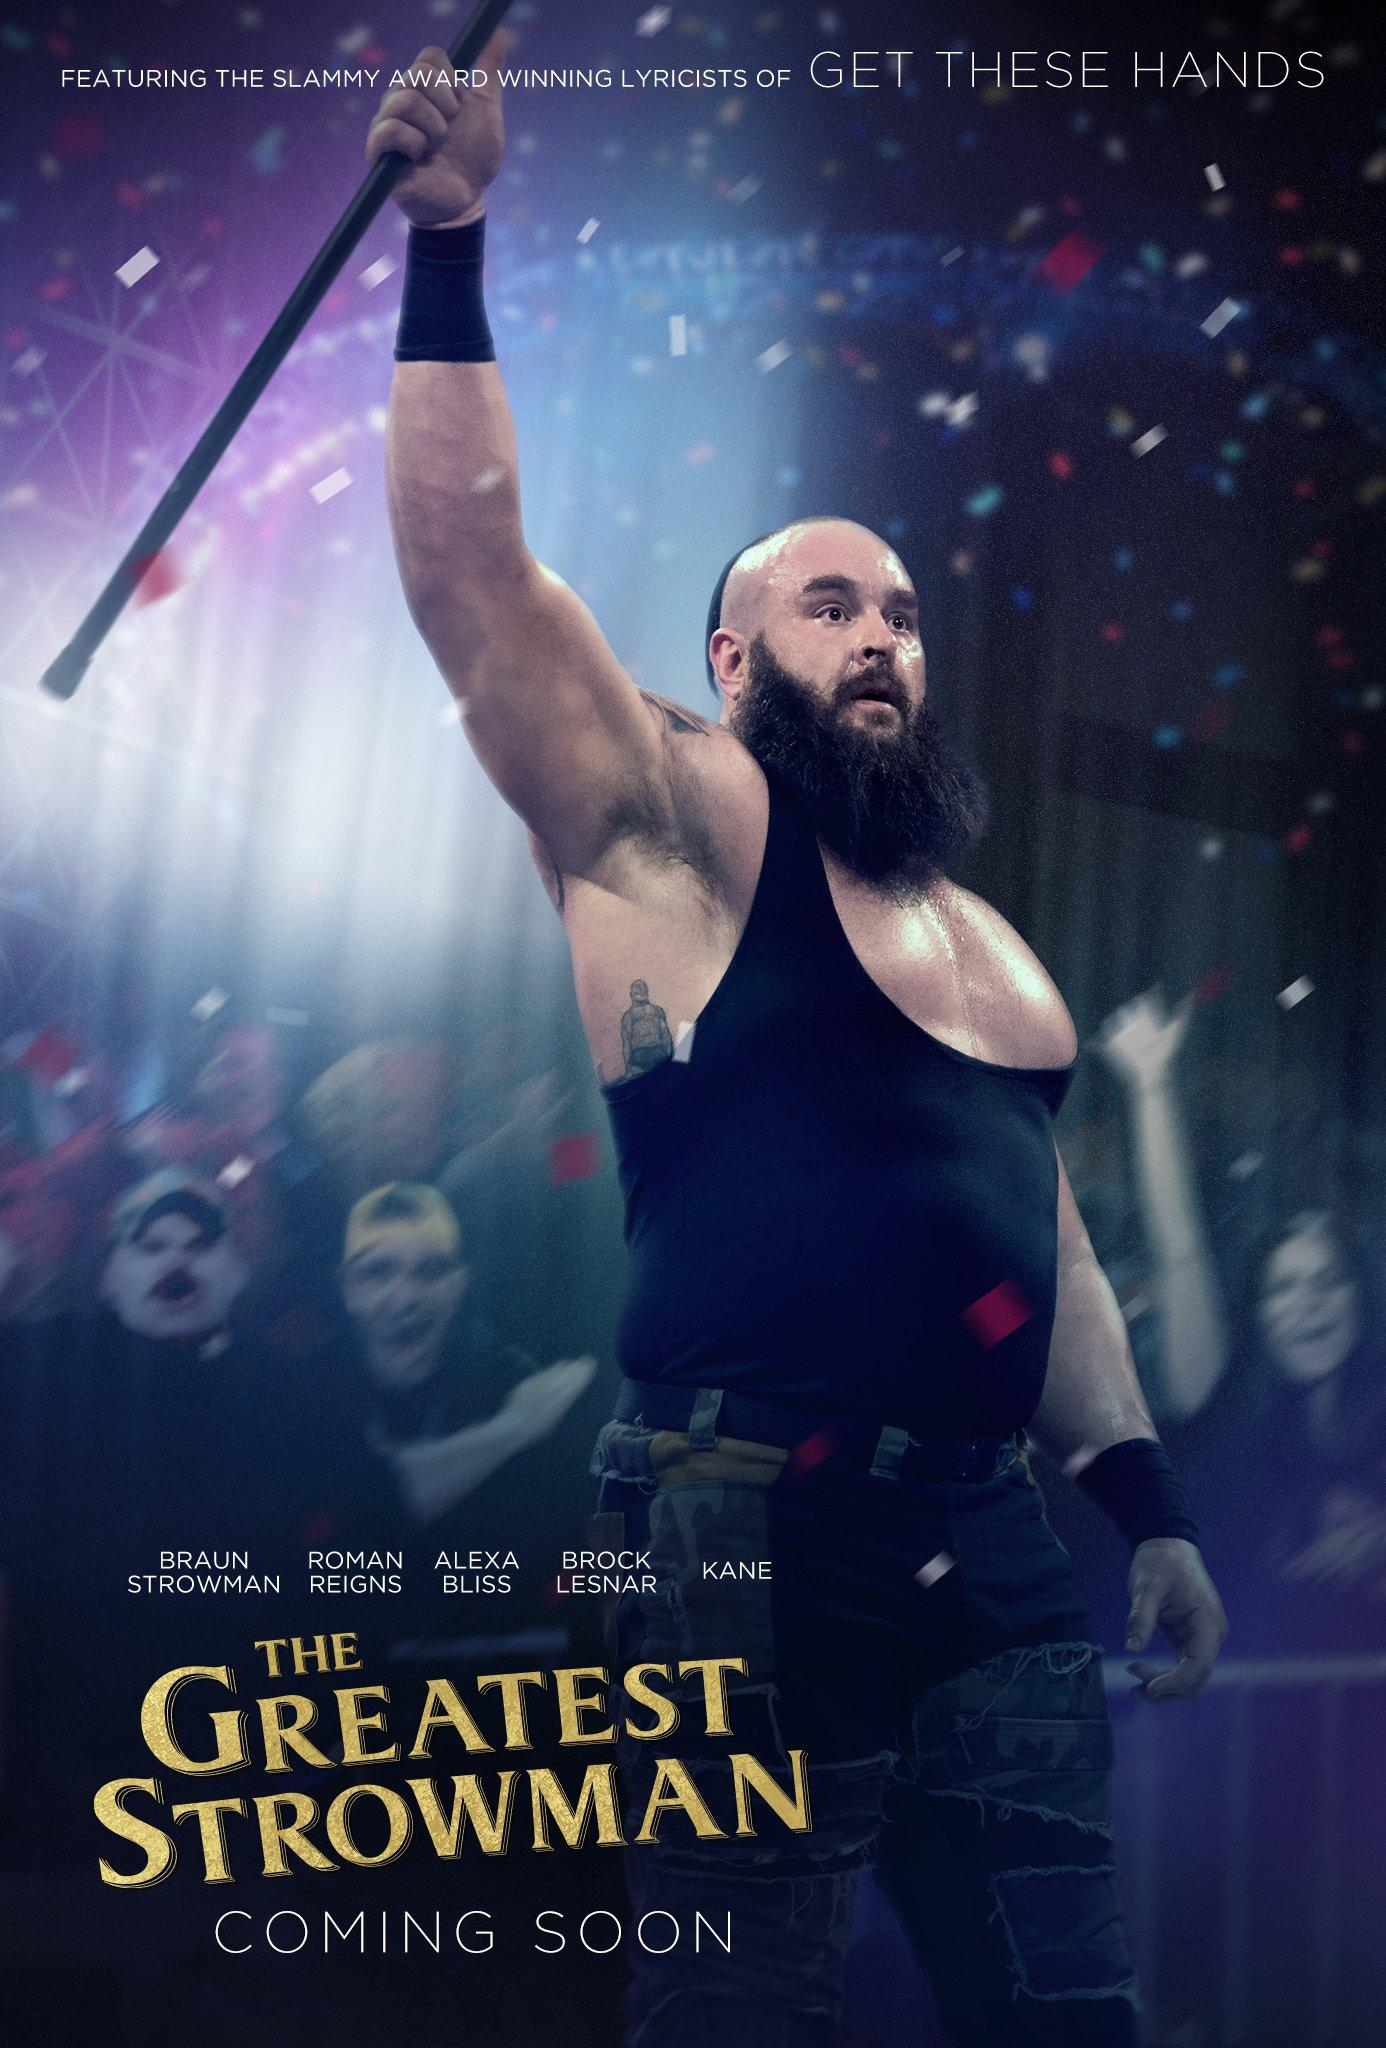 GreatestStrowman--a744ffaa605298c79832d07cd1a444e2